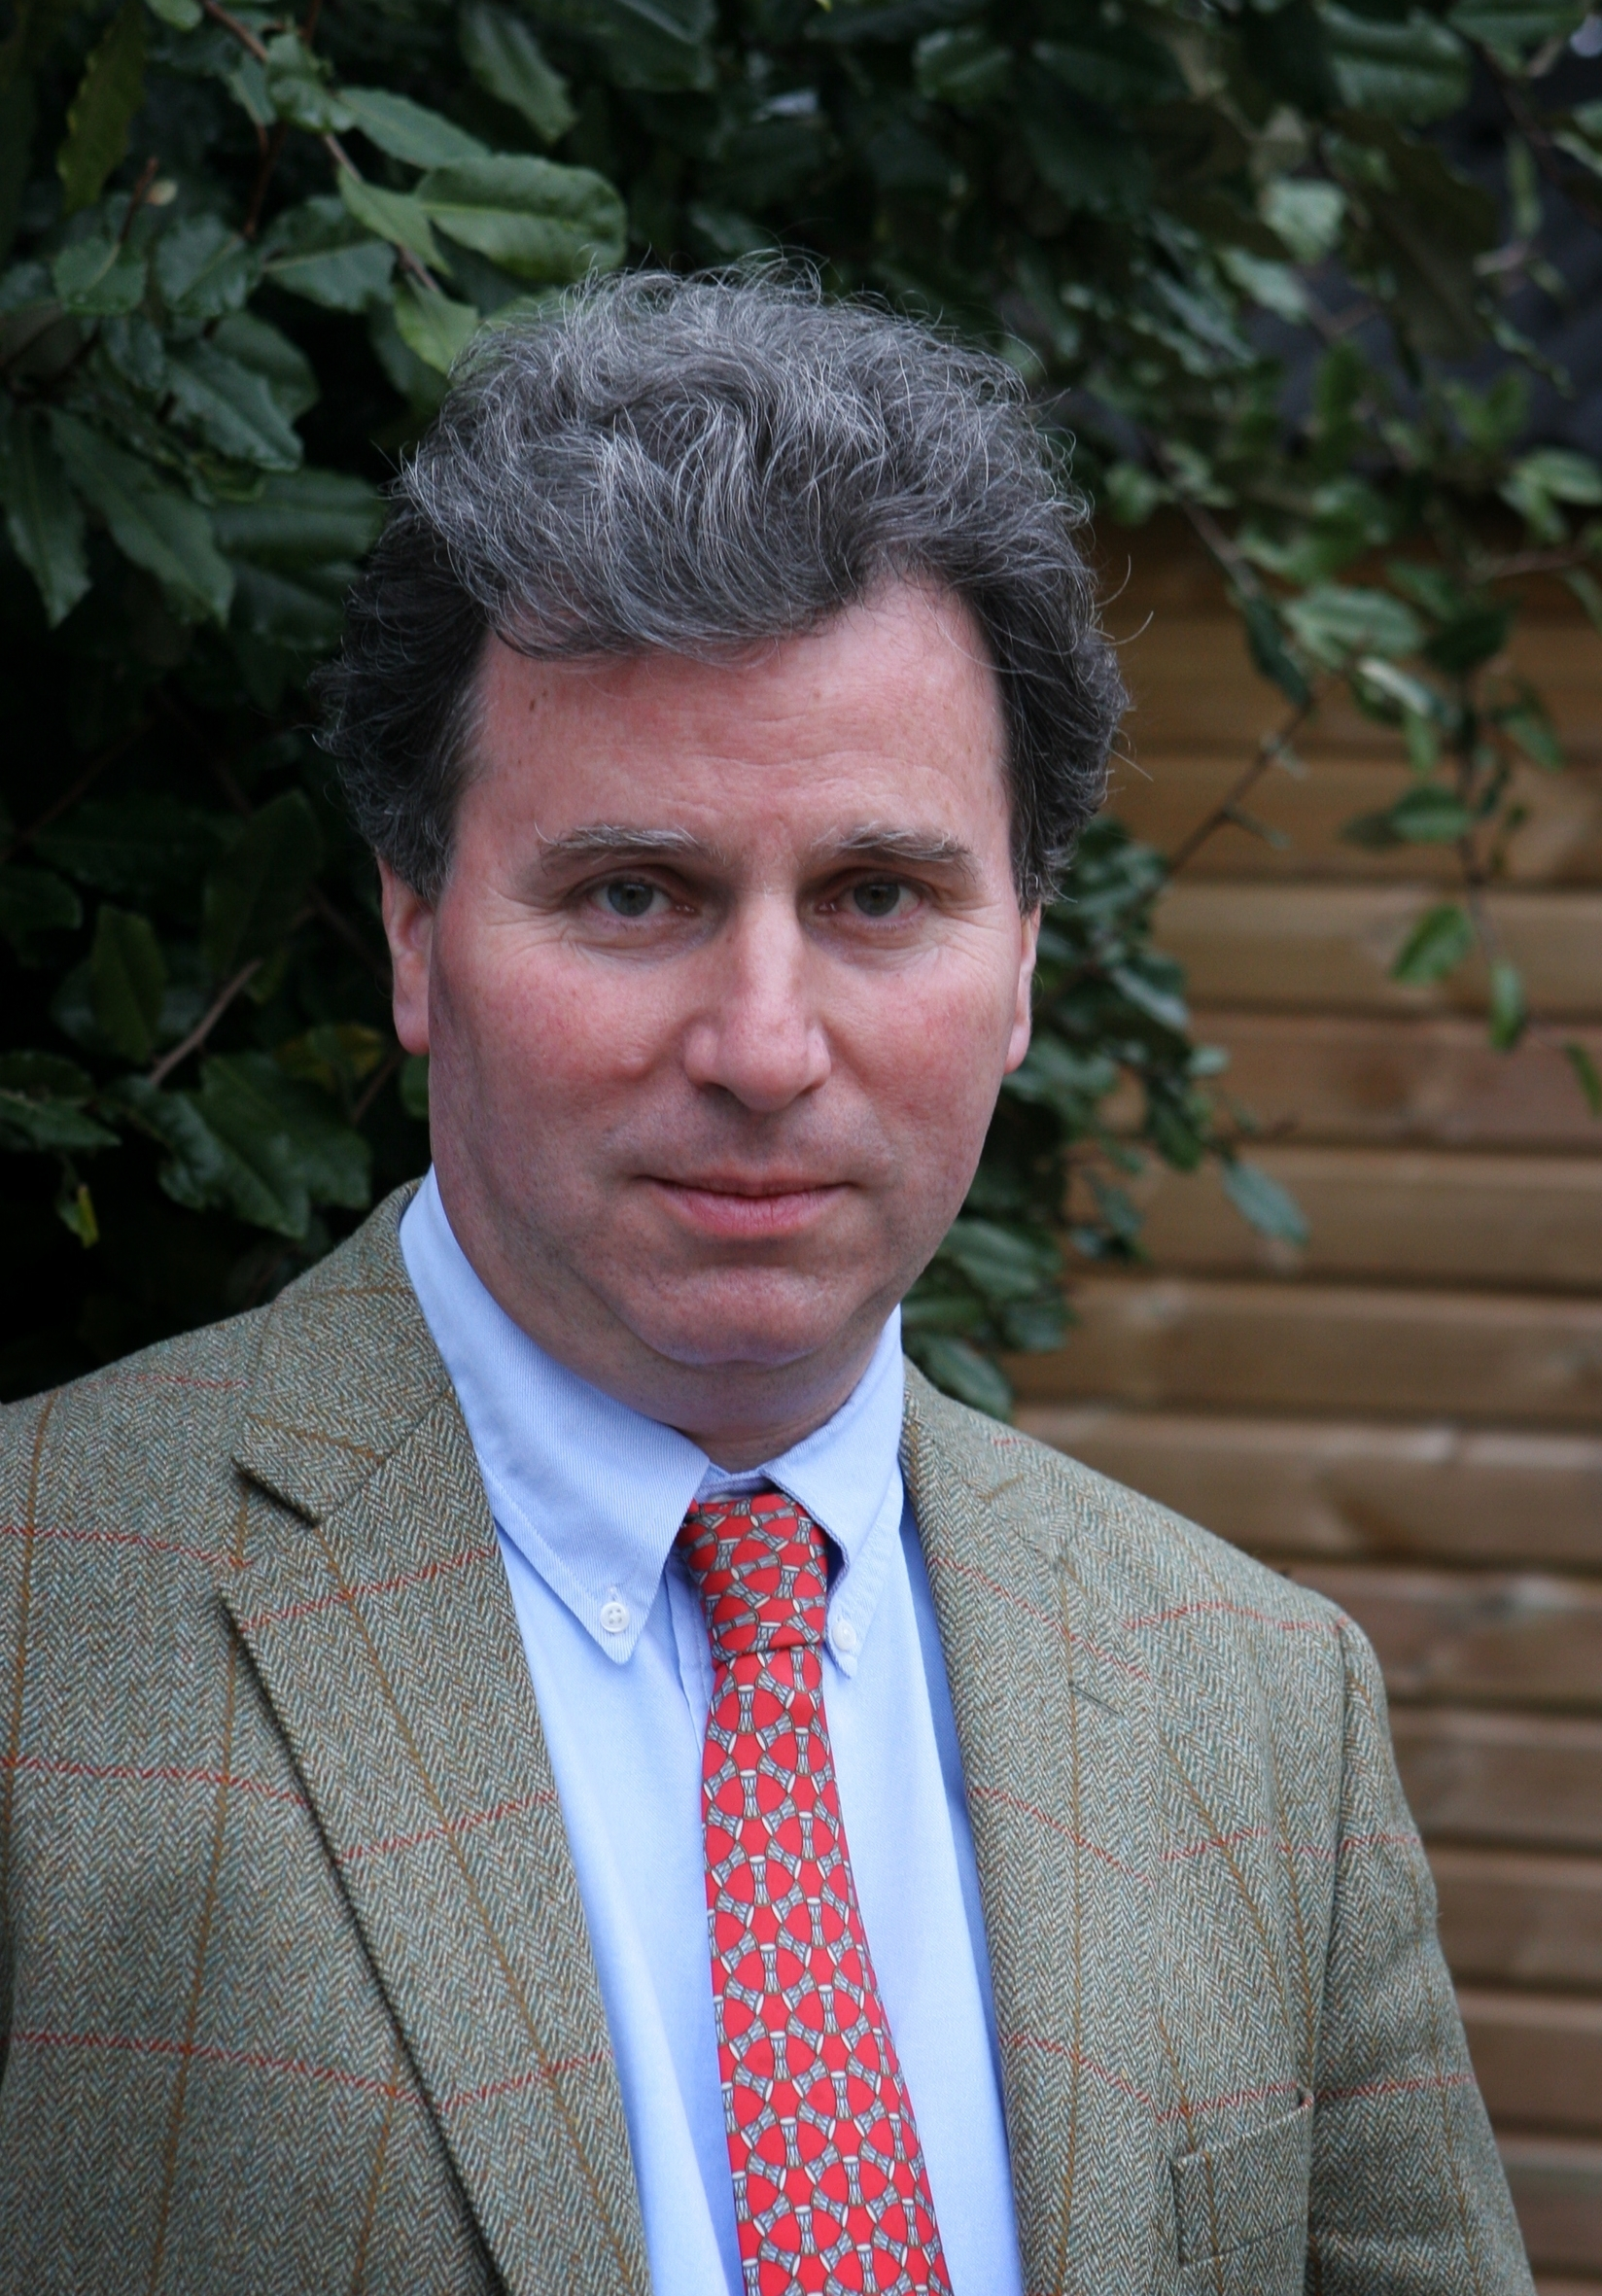 Column by Sir Oliver Letwin MP